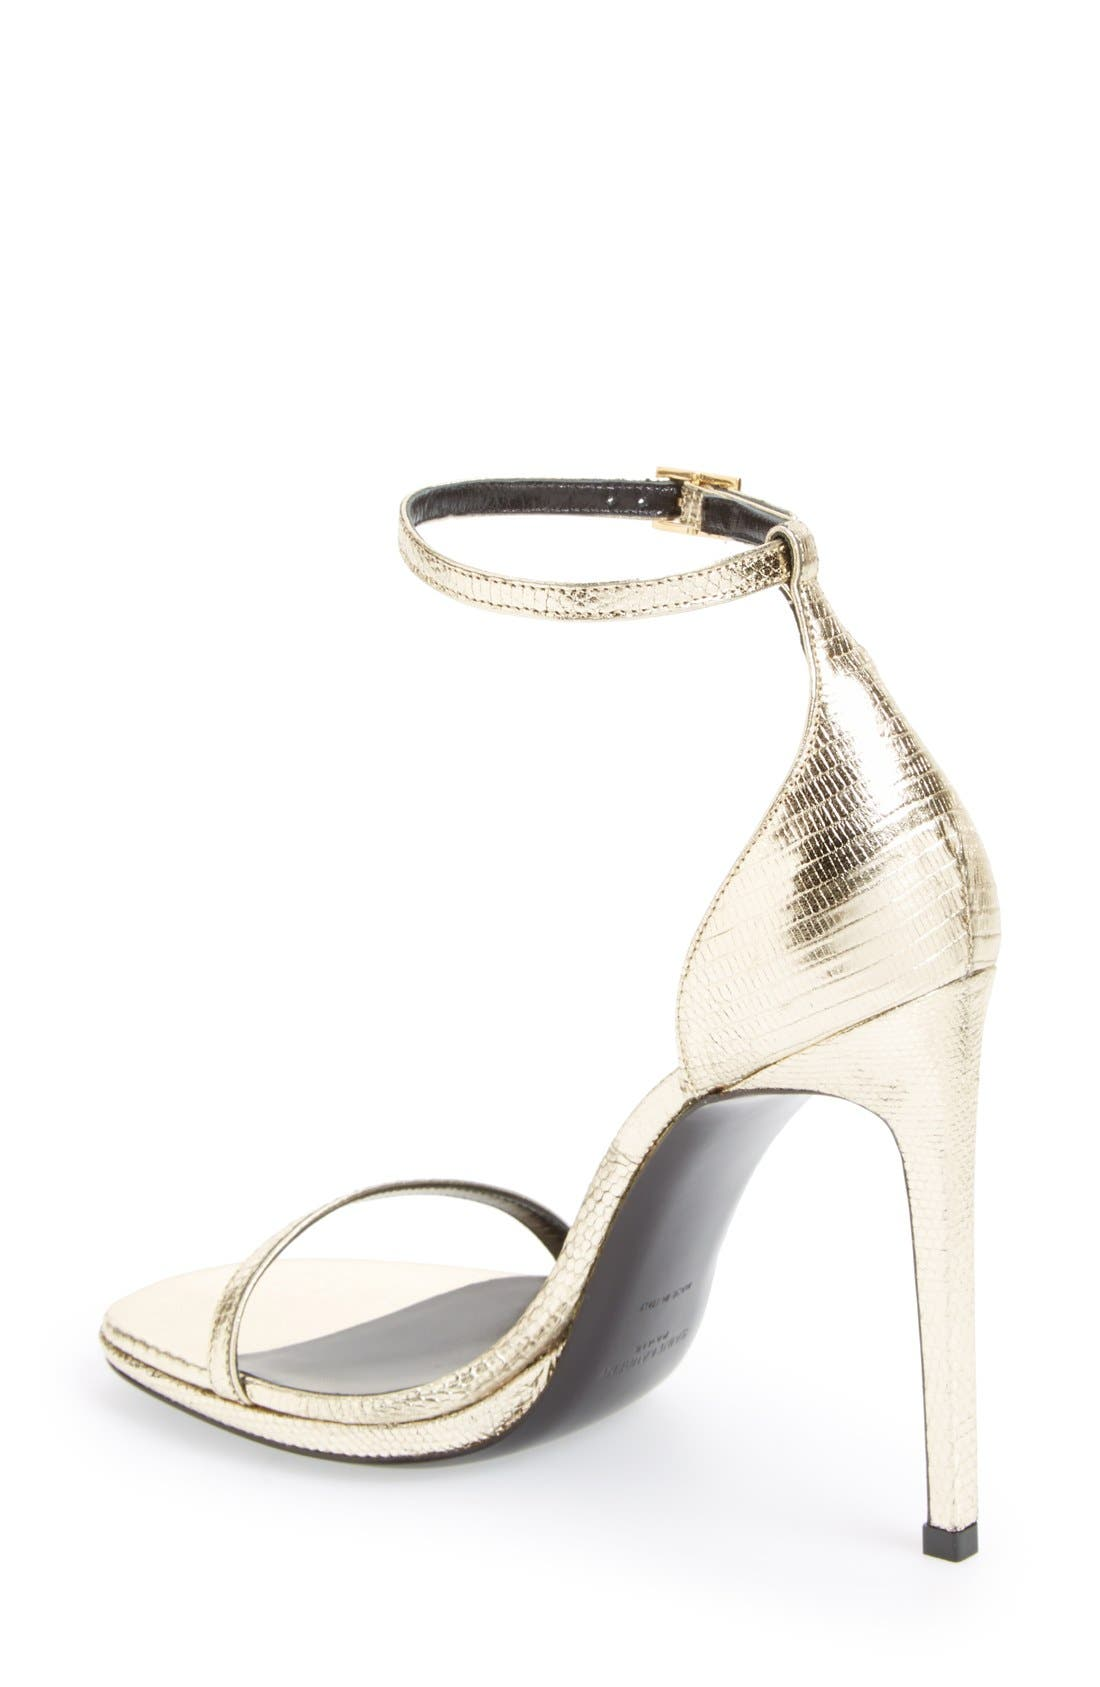 Alternate Image 2  - Saint Laurent 'Jane' Metallic Lizard Embossed Ankle Strap Sandal (Women)